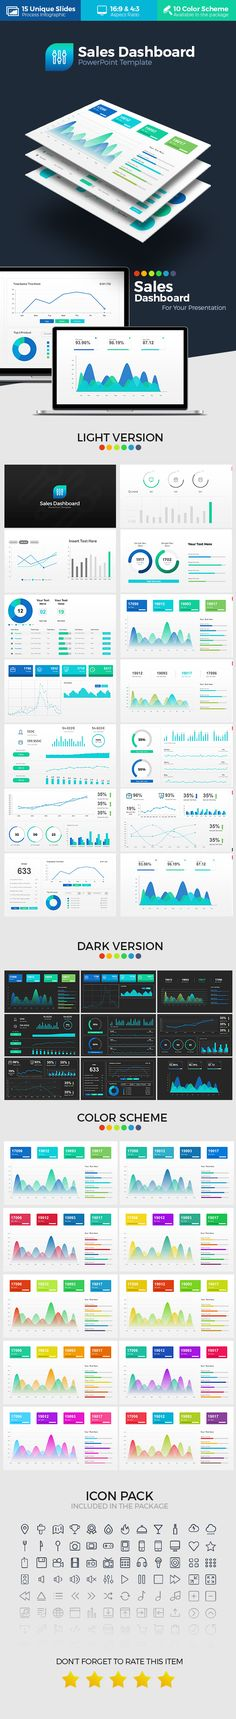 Overview: Flat, Clean, Minimalist, Elegant and Flexible PowerPoint Presentation Template, perfect for presentation sport, corporate and personal use. Sales Dashboard PowerPoint Presentation Template is PowerPoint Template that containing Dashboard Infographic elements and chart, can be used to explaining your business data chart in presentation. Very easy to change the color schemes.